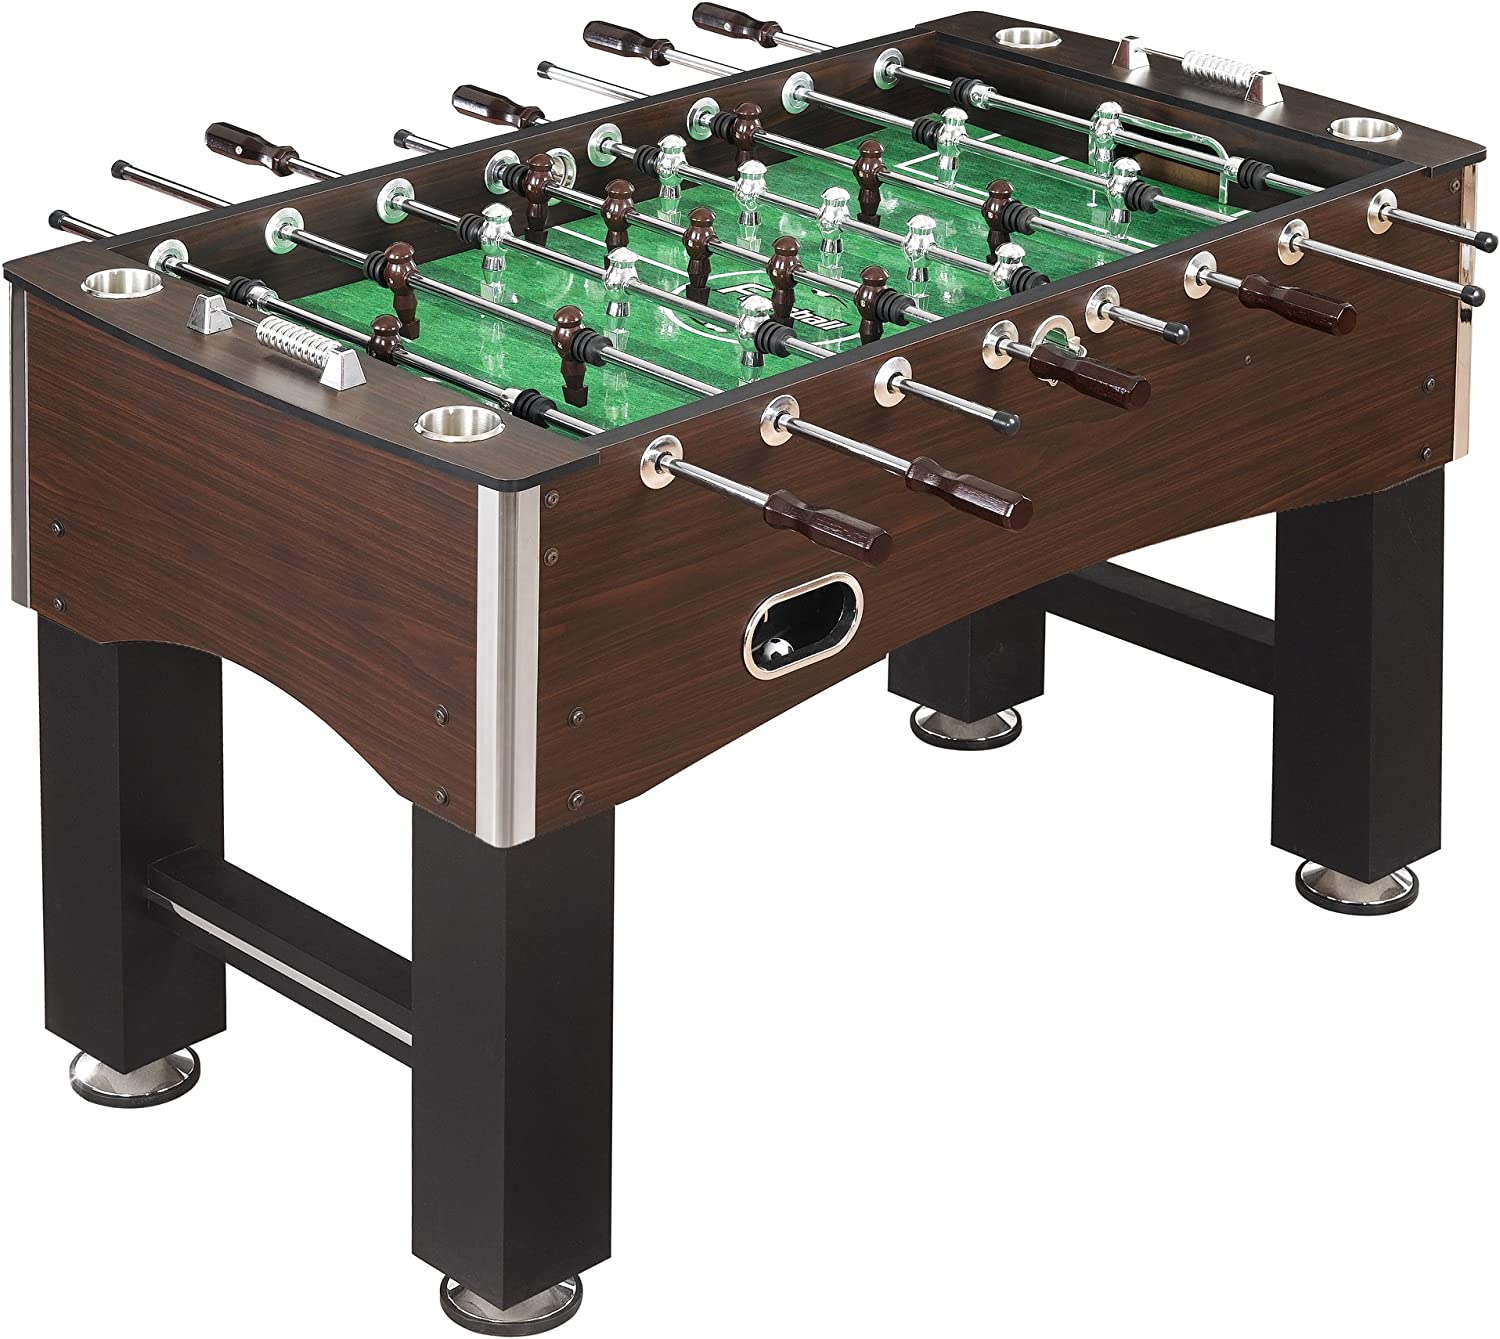 Hathaway 56 Inch Primo Foosball Table Family Soccer Game With Wood Grain Finish Analog Scoring And Free Accessories Foosball Tables Sports Outdoors